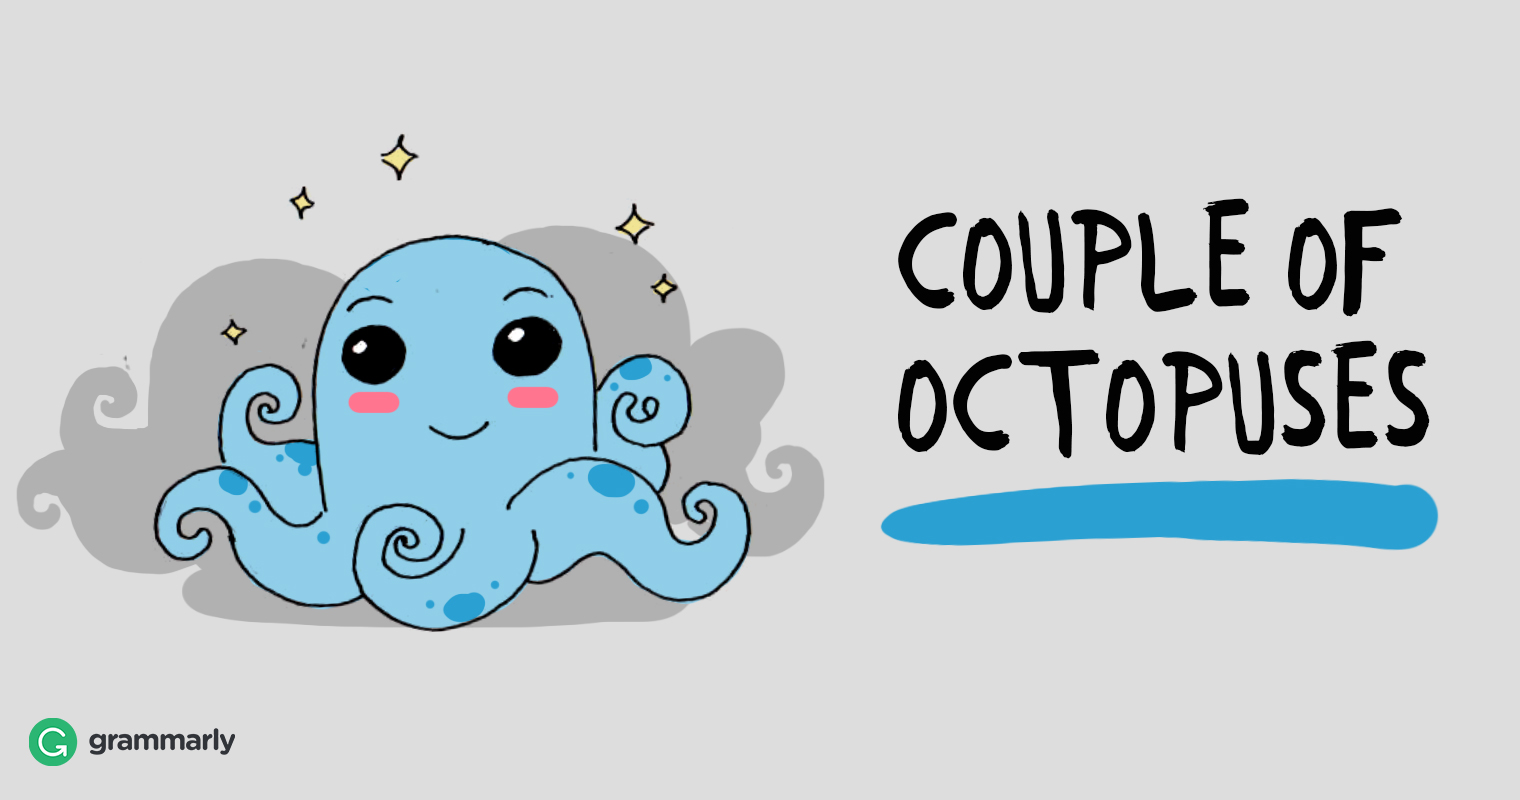 The Plural of Octopus: Octopi or Octopuses?